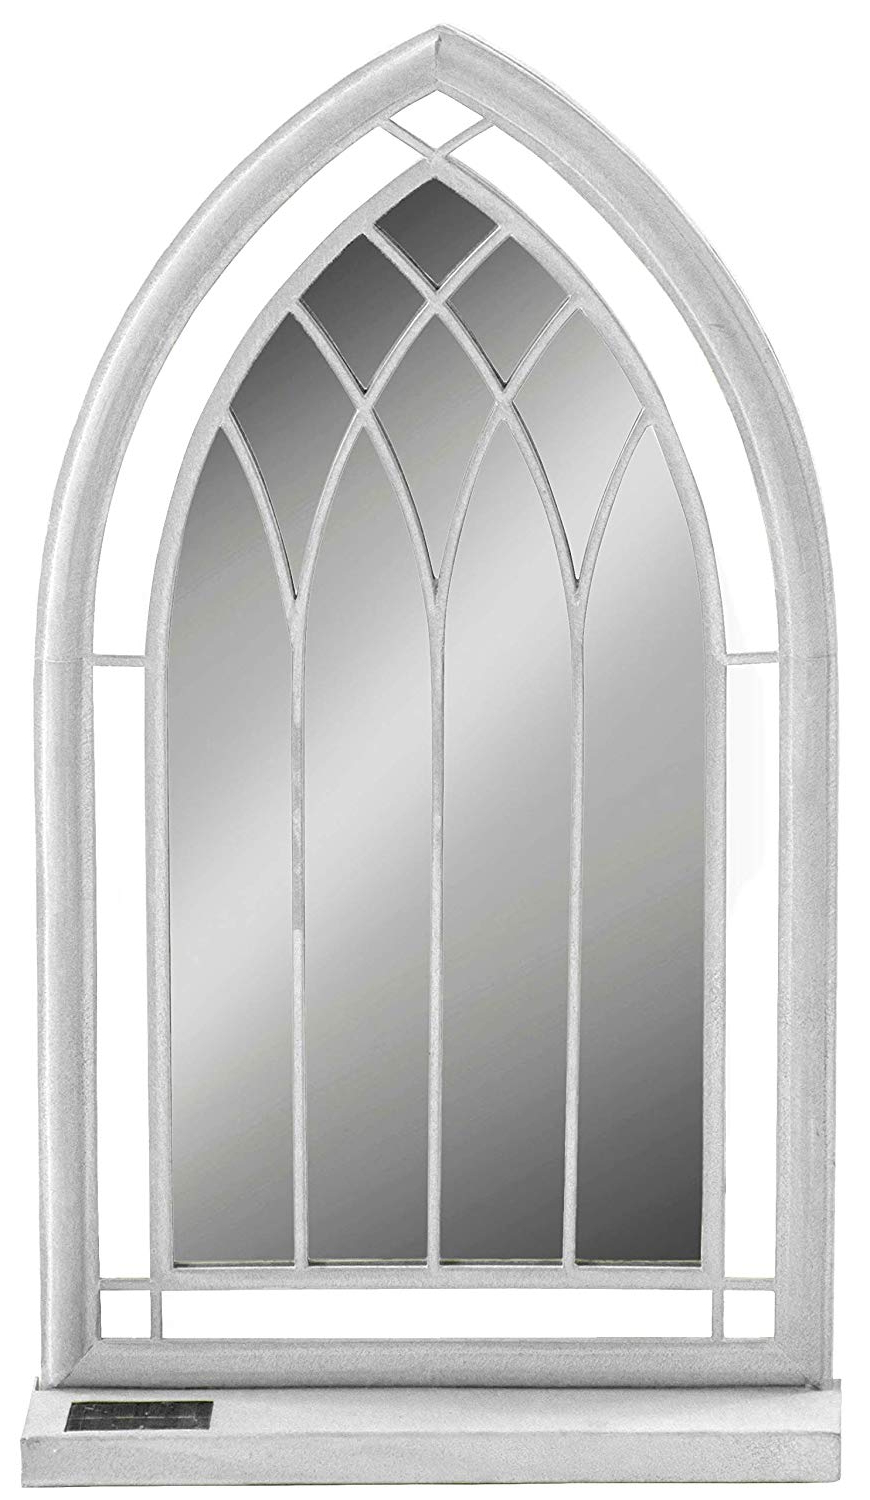 Suntime Church Style Outdoor Metal Vintage Distressed Framed Arched Led  Garden Wall Mirror Intended For Most Recently Released Outdoor Garden Wall Mirrors (View 17 of 20)